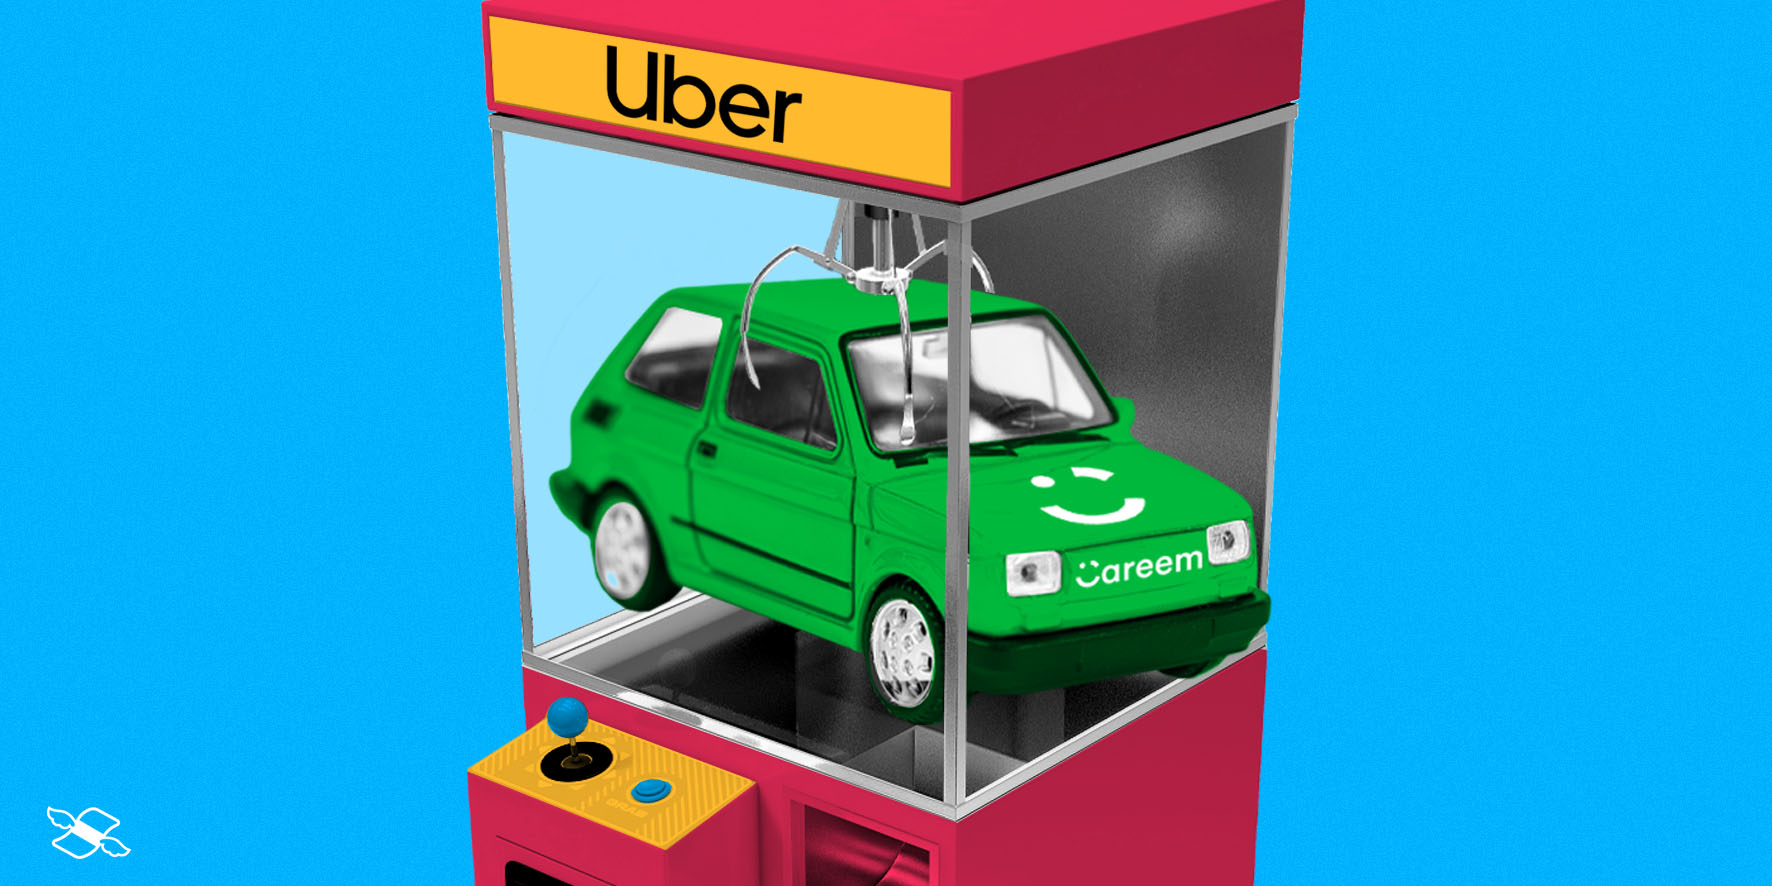 ec8decad0c2f Uber buys Dubai rival Careem as IPO nears